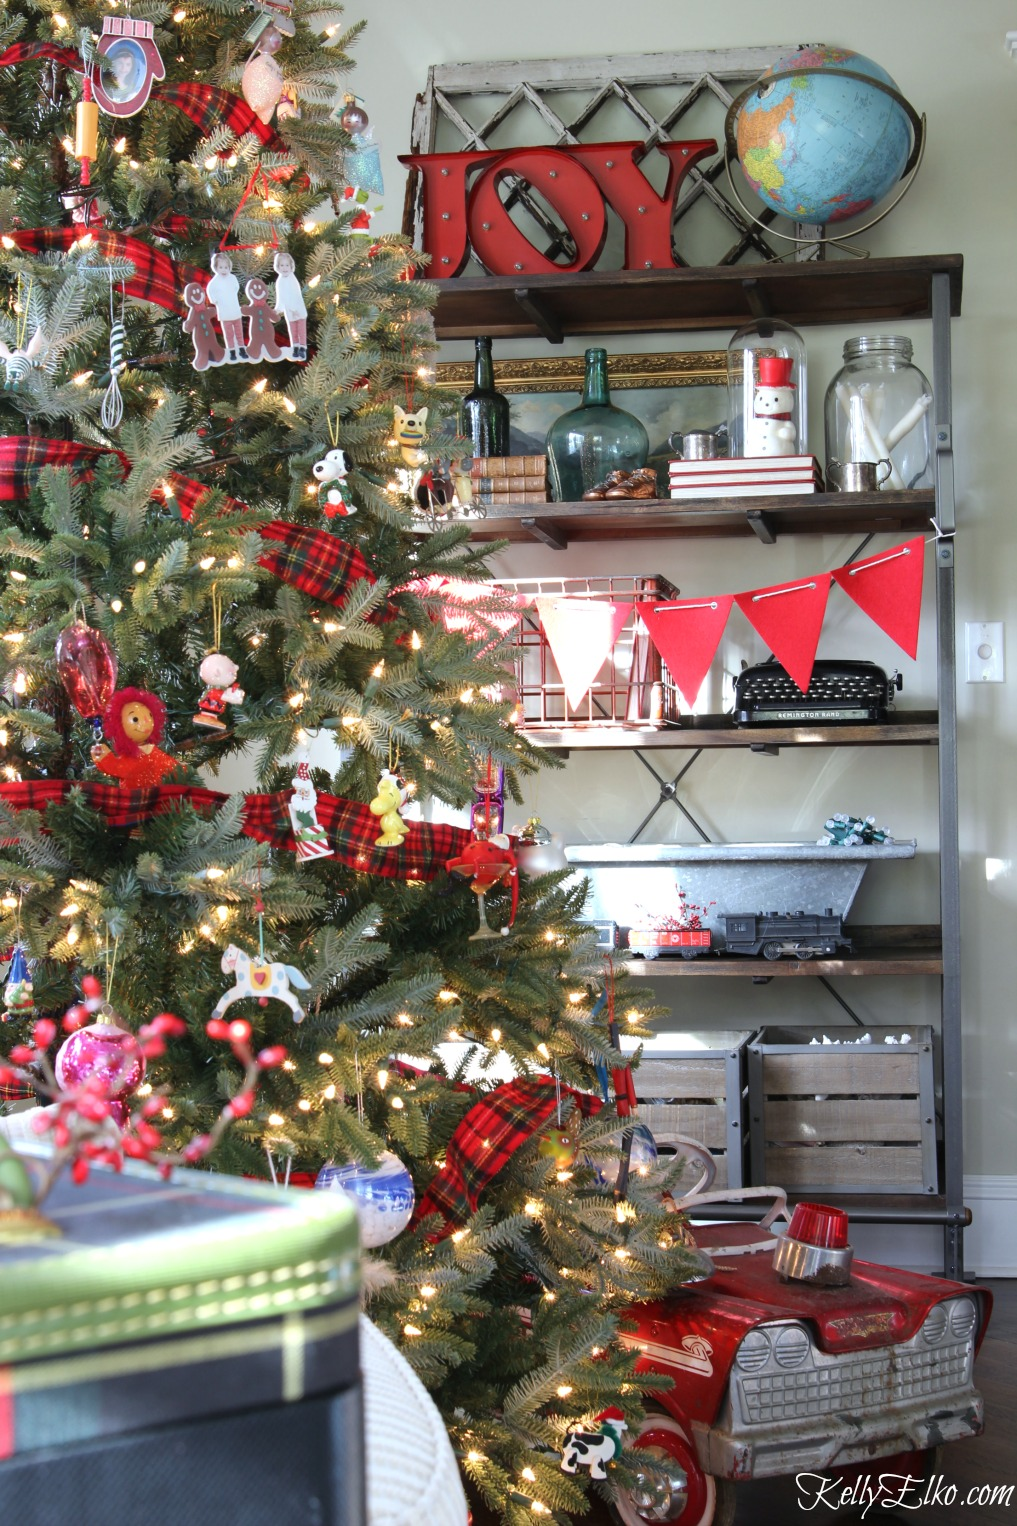 Christmas tree shelves - love the Joy to the World and vintage globe kellyelko.com